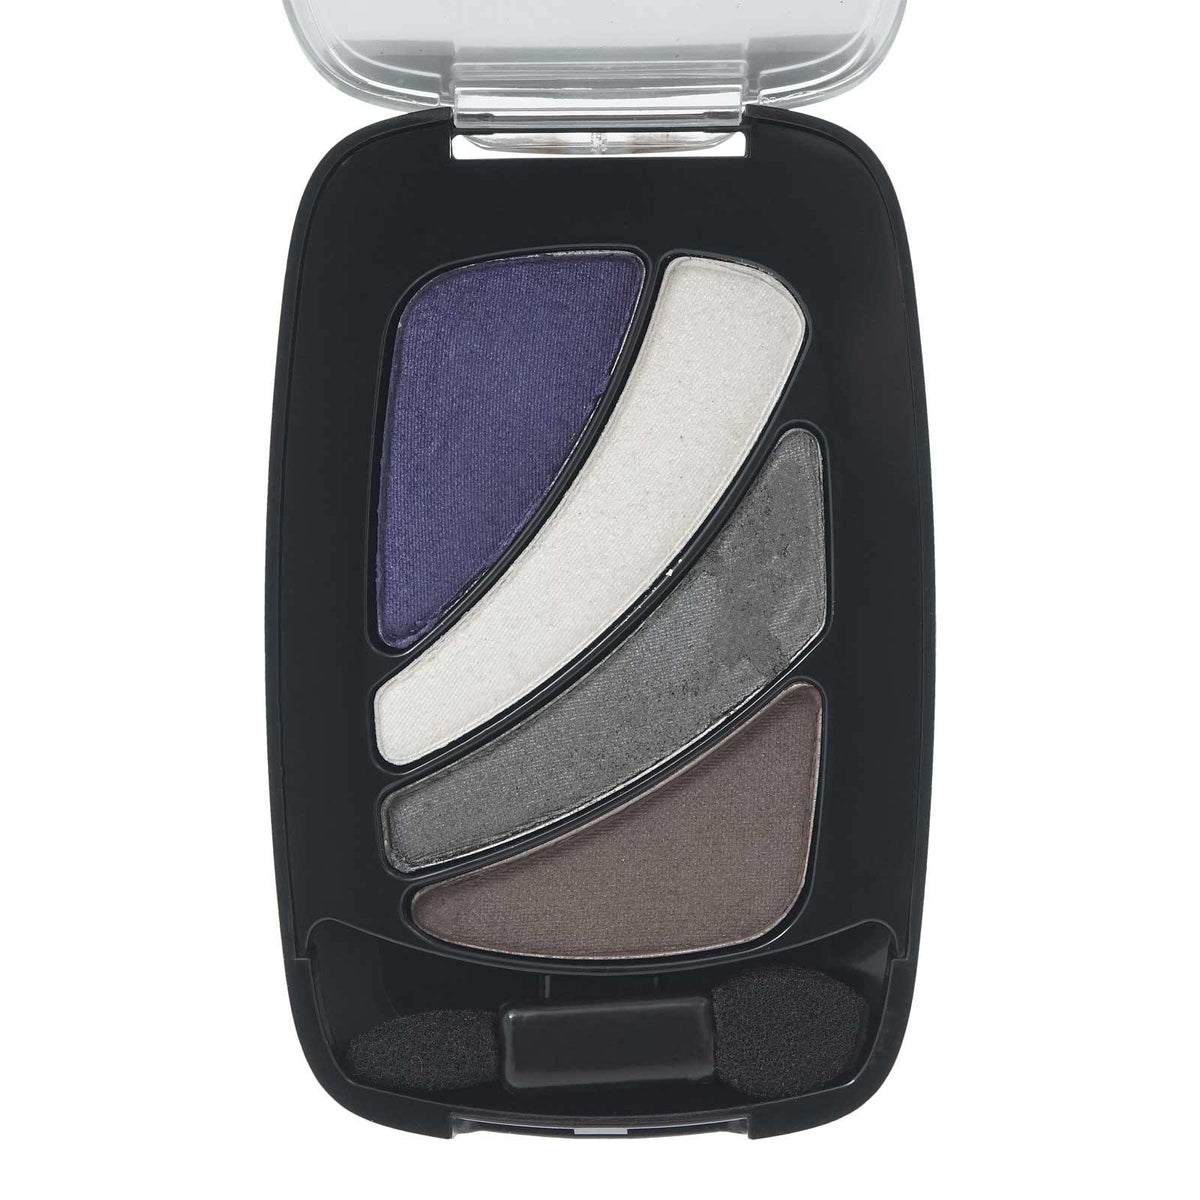 LOREAL COLOUR RICHE EYESHADOW QUADS- LOVE TO HATE ME (24/cs)